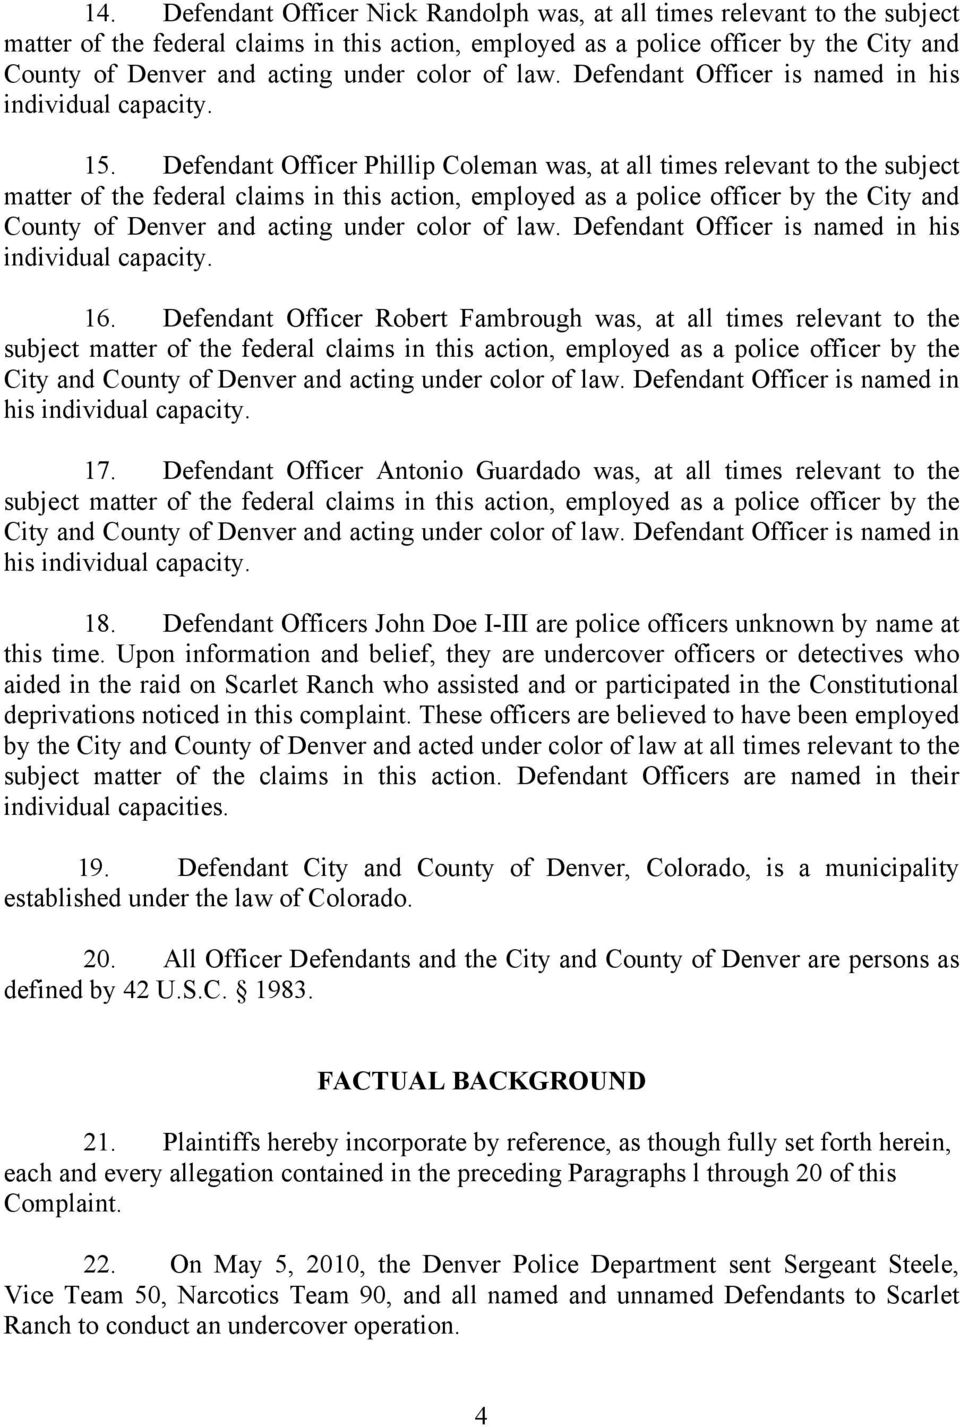 Defendant Officer Phillip Coleman was, at all times relevant to the subject matter of the federal claims in this action, employed as a police officer by the City and County of Denver and acting under